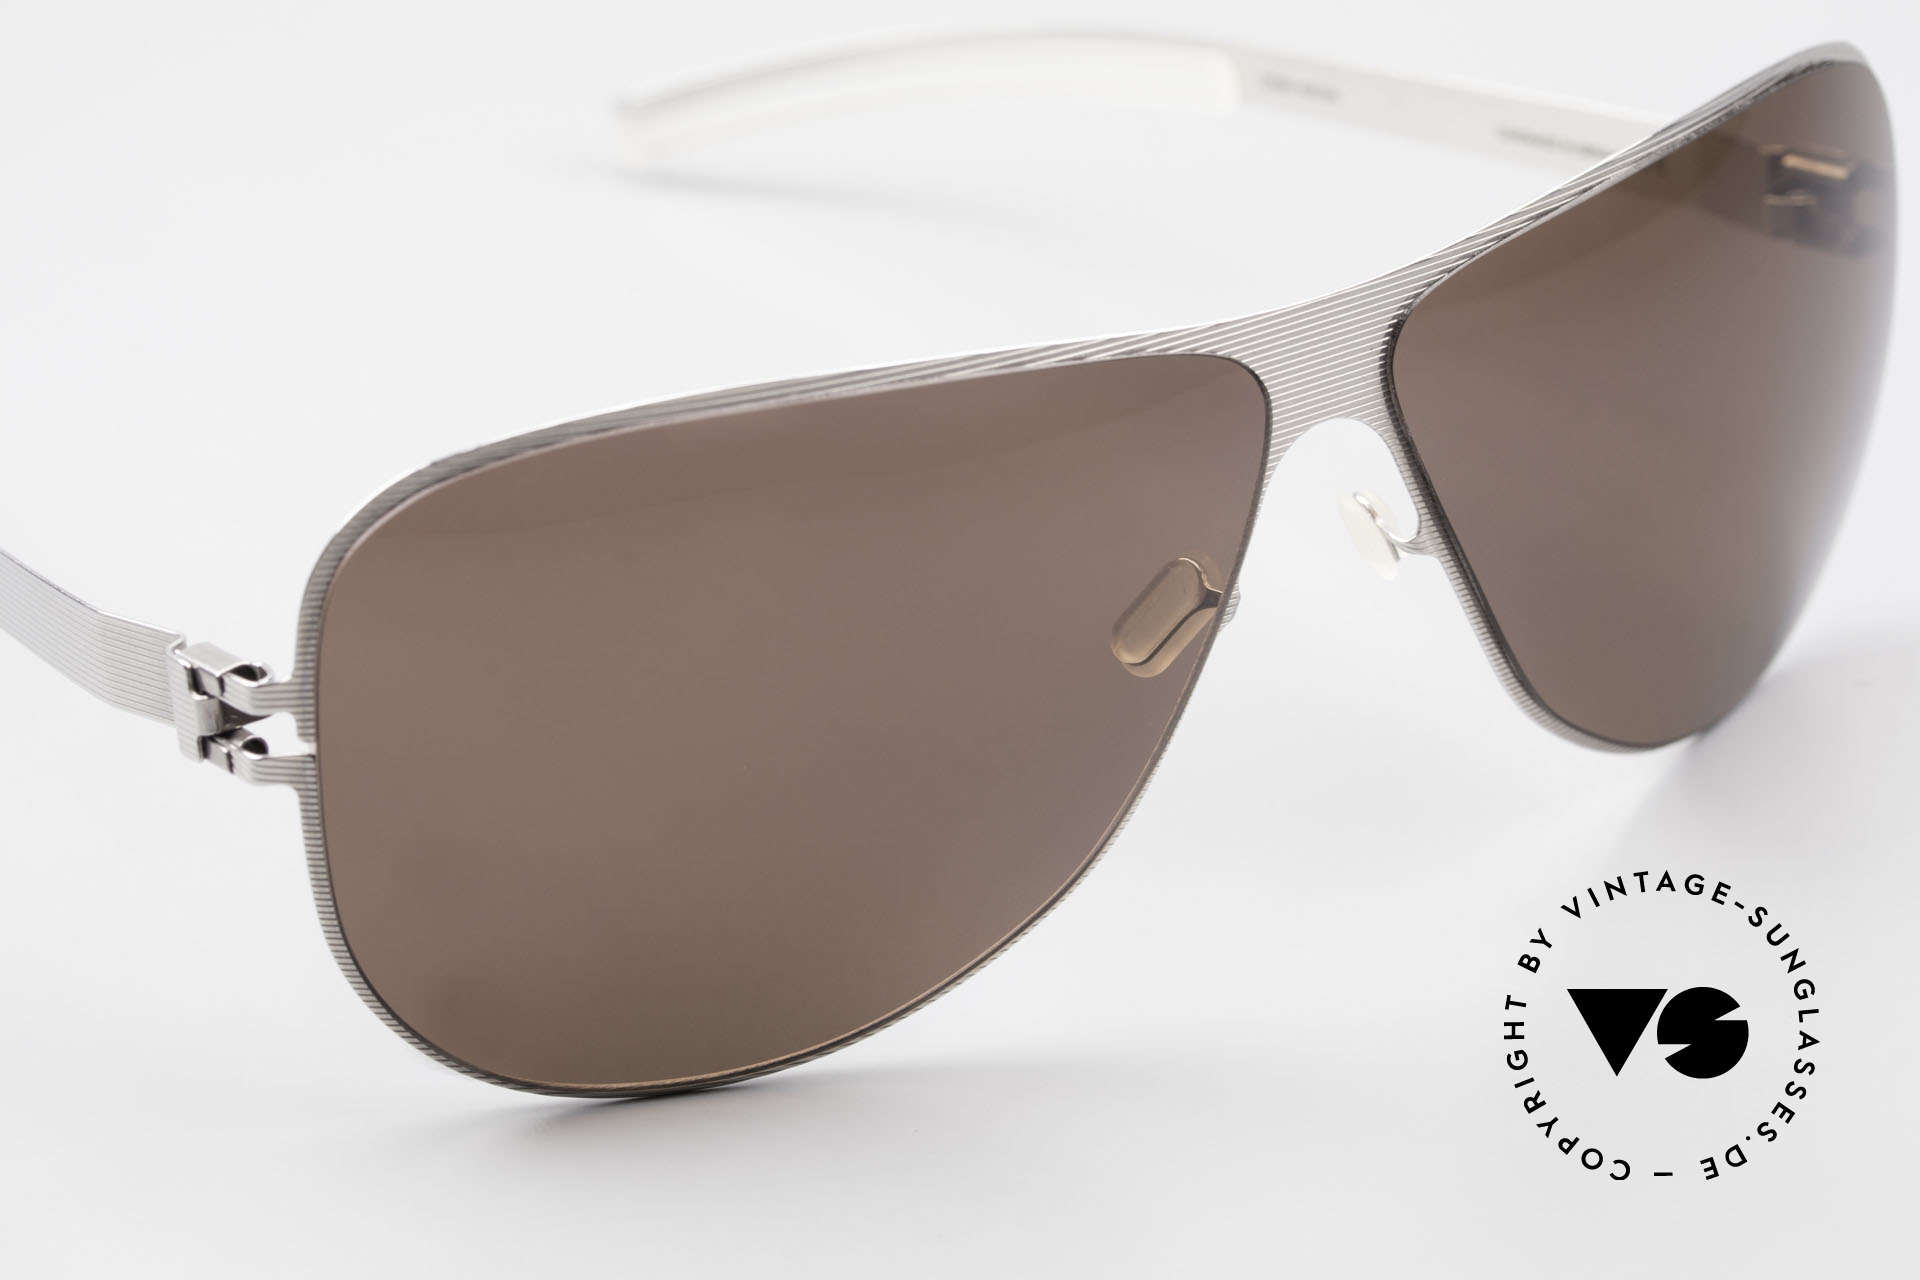 Mykita Ava Ladies Polarized Shades 2007's, top-notch quality & cool design (ladies aviator glasses), Made for Women